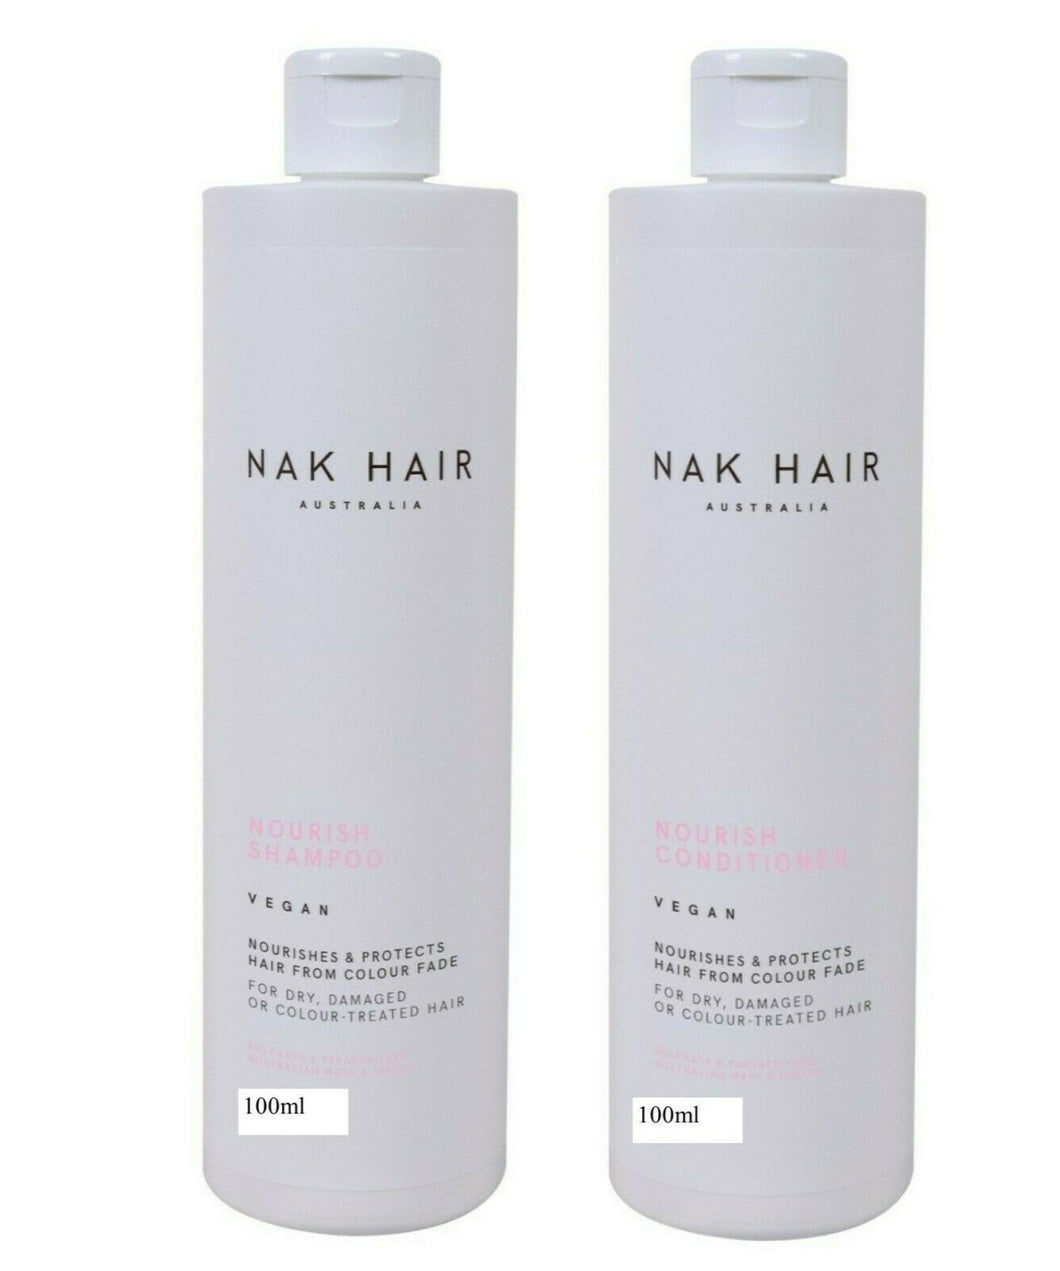 Nak Nourishing Nourish Shampoo Conditoner 100ml Duo Nak Travel Size - On Line Hair Depot